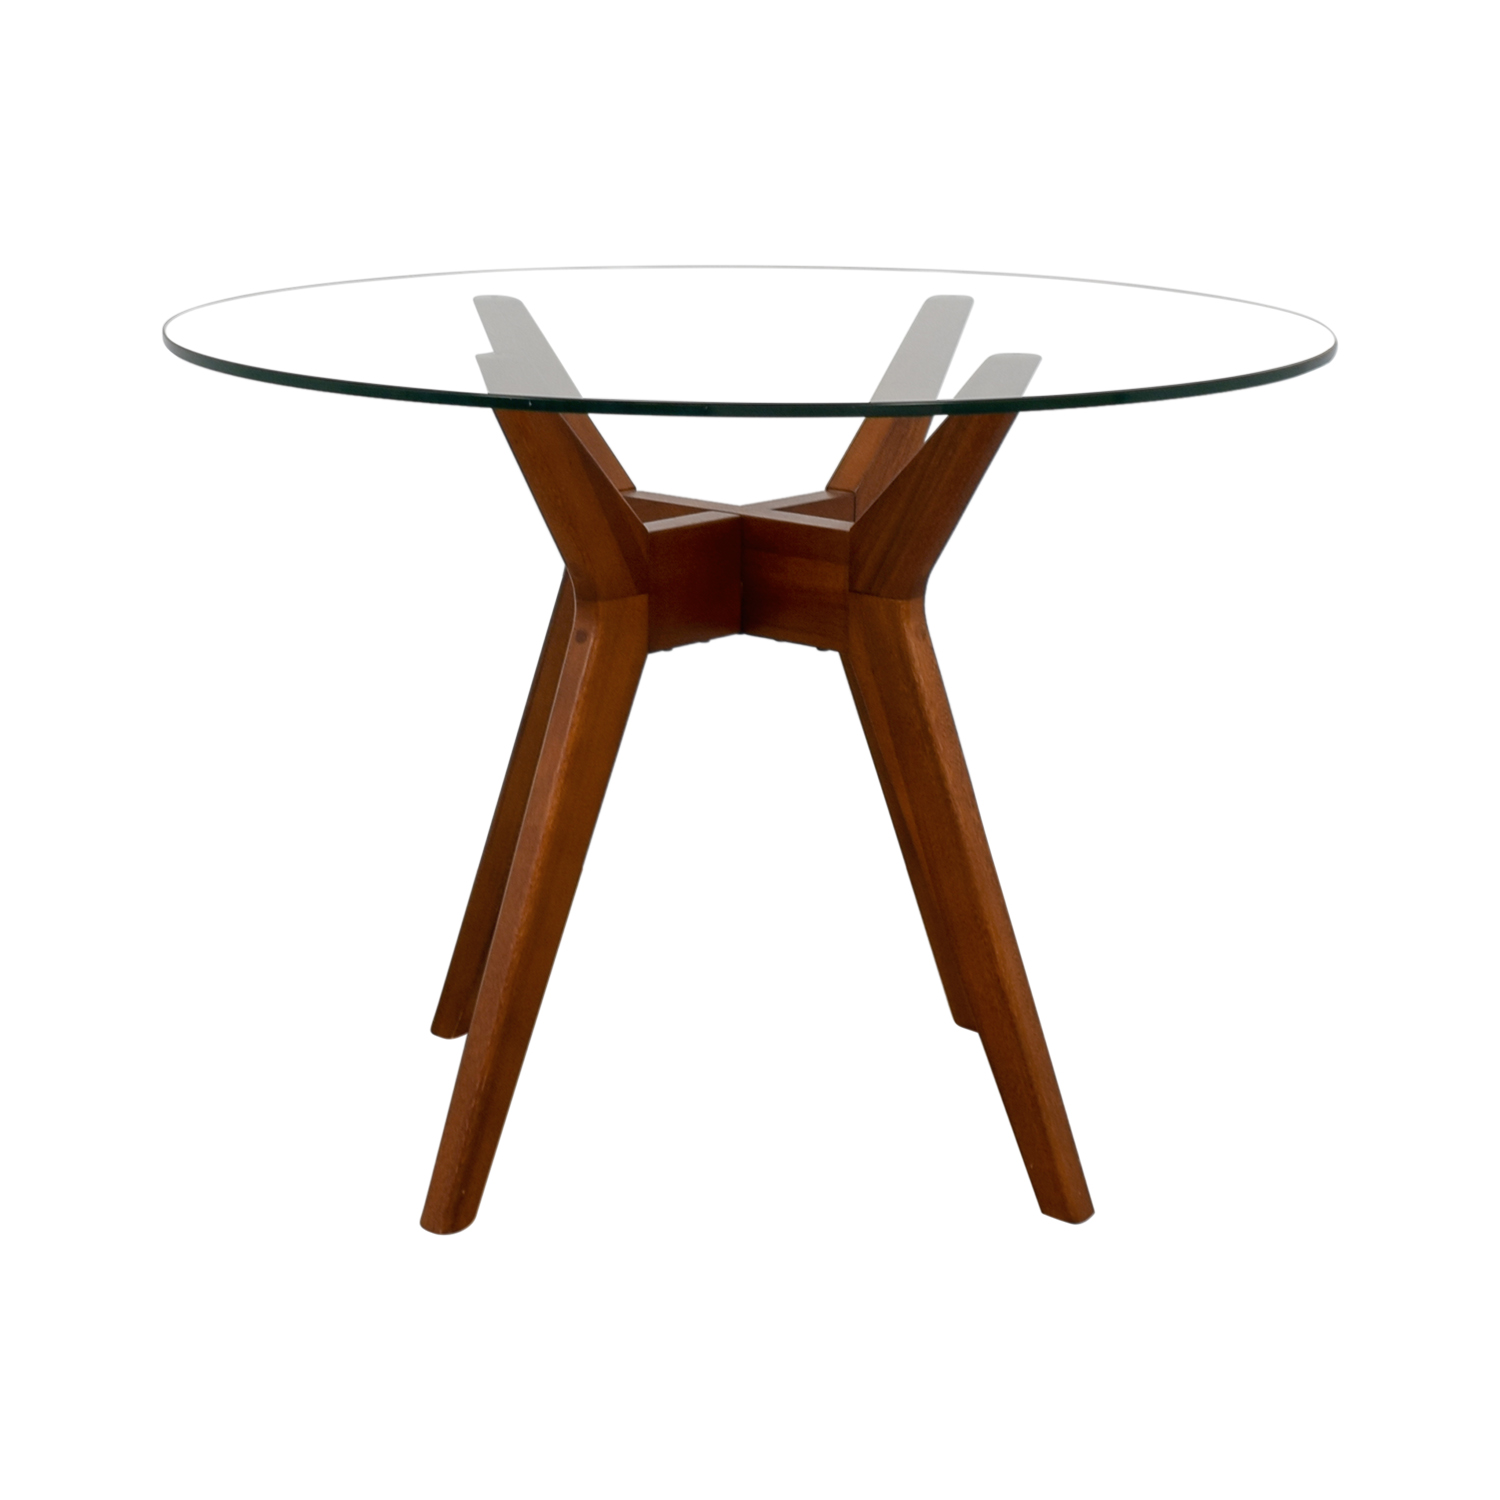 OFF West Elm West Elm Jensen Round Glass Dining Table Tables - West elm jensen dining table